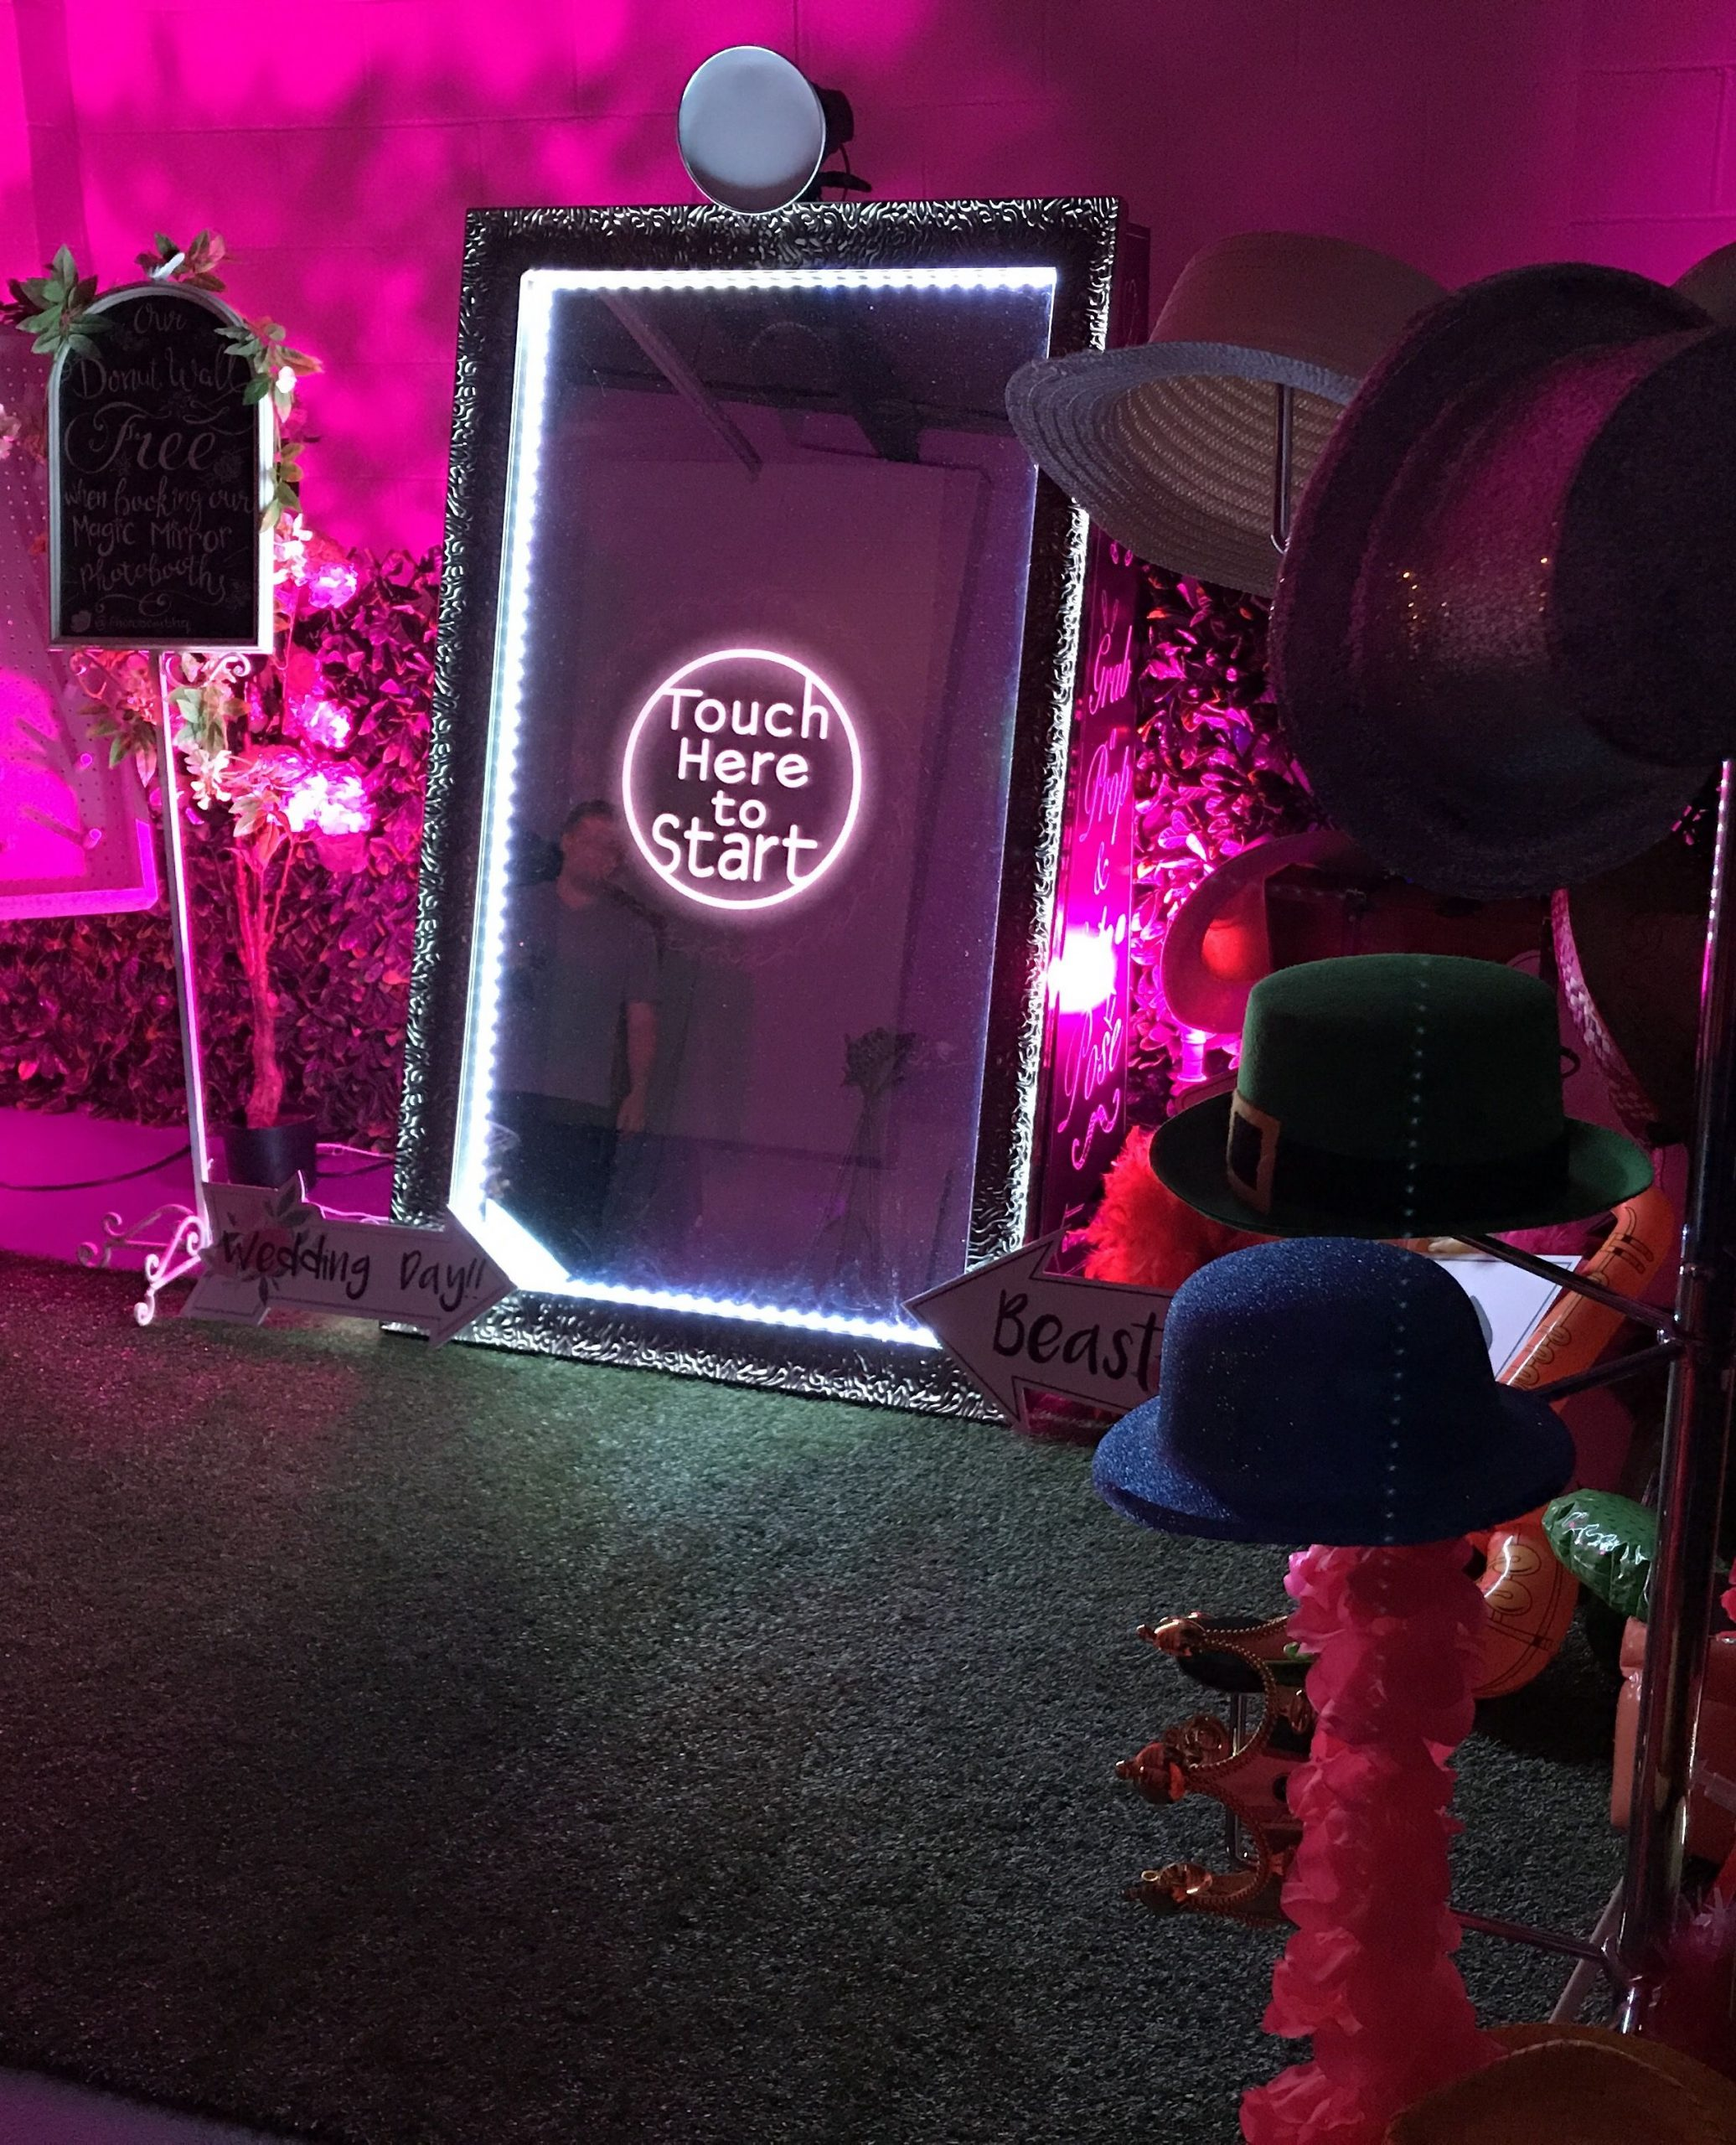 """A large digital mirror saying """"Touch here to start"""" set up against pink lights Bachelorette Party Ideas for the Break the Bank Bride"""